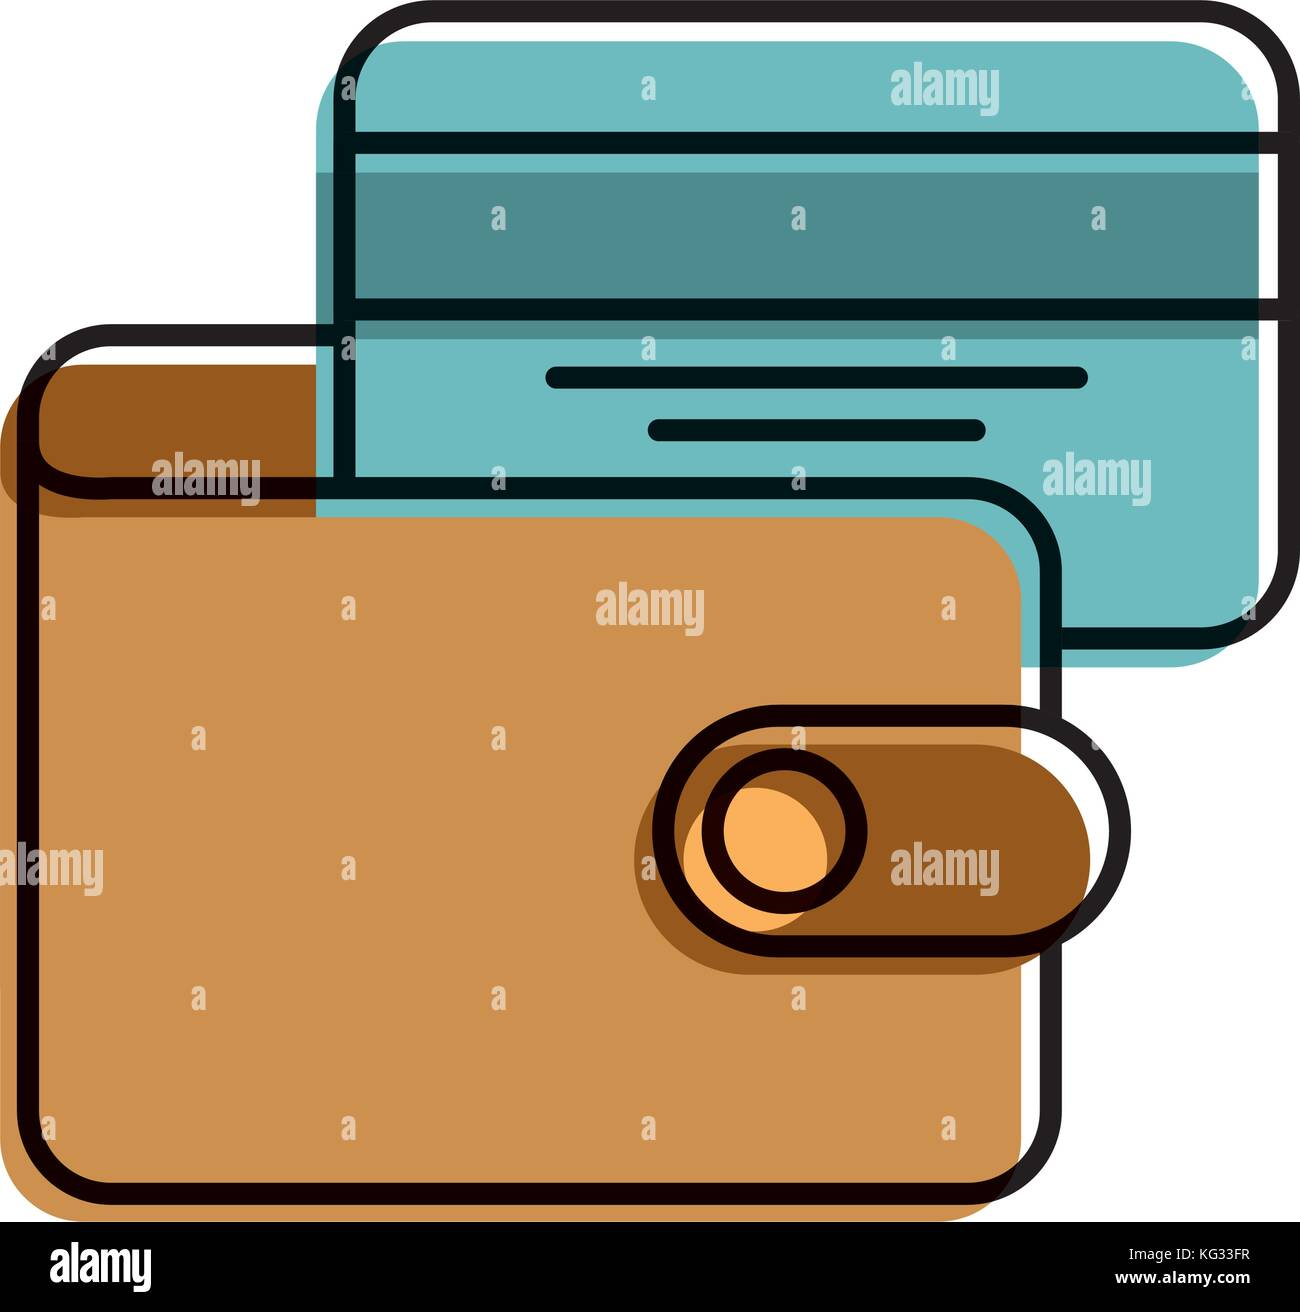 E commerce wallet credit card bank business stock vector art e commerce wallet credit card bank business colourmoves